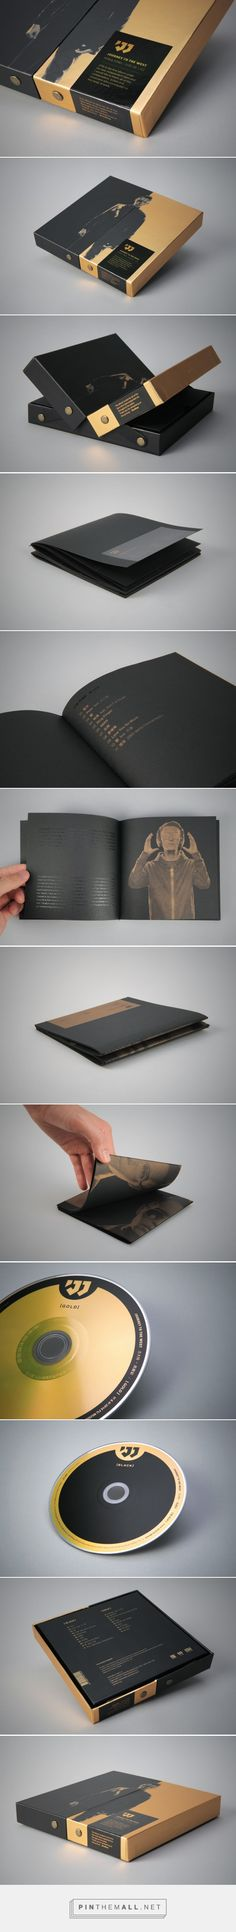 Design brochure luxury galleries 19 ideas for 2019 Design Café, Design Logo, Design Poster, Graphic Design Branding, Advertising Design, Corporate Design, Print Design, Design Brochure, Brochure Design Inspiration